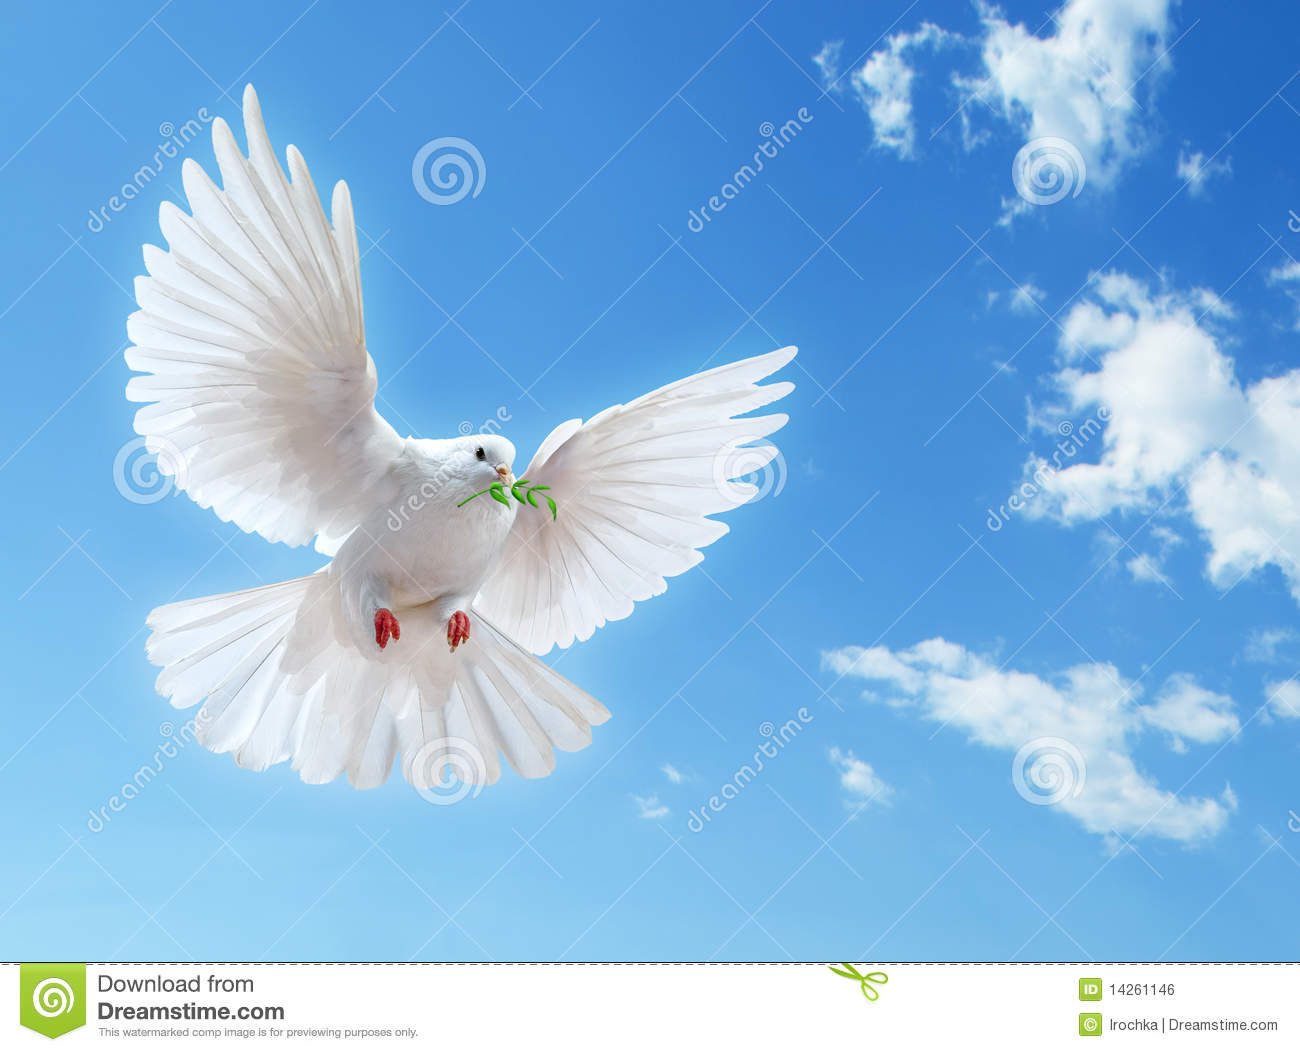 White Dove In Blue Sky Stock Photo. Image Of Feathers